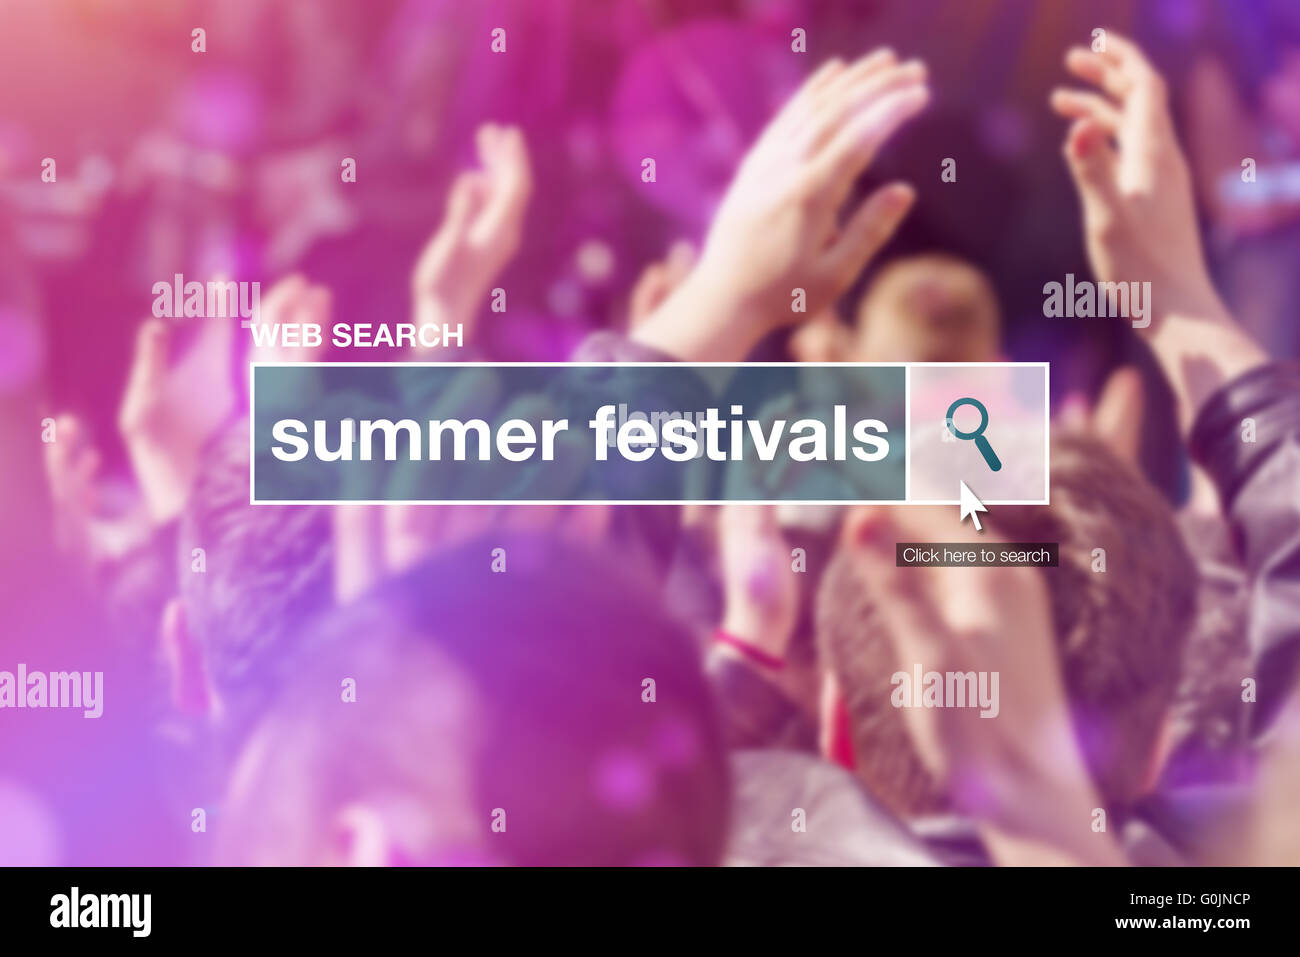 Web search bar glossary term - summer festivals definition in internet glossary. - Stock Image